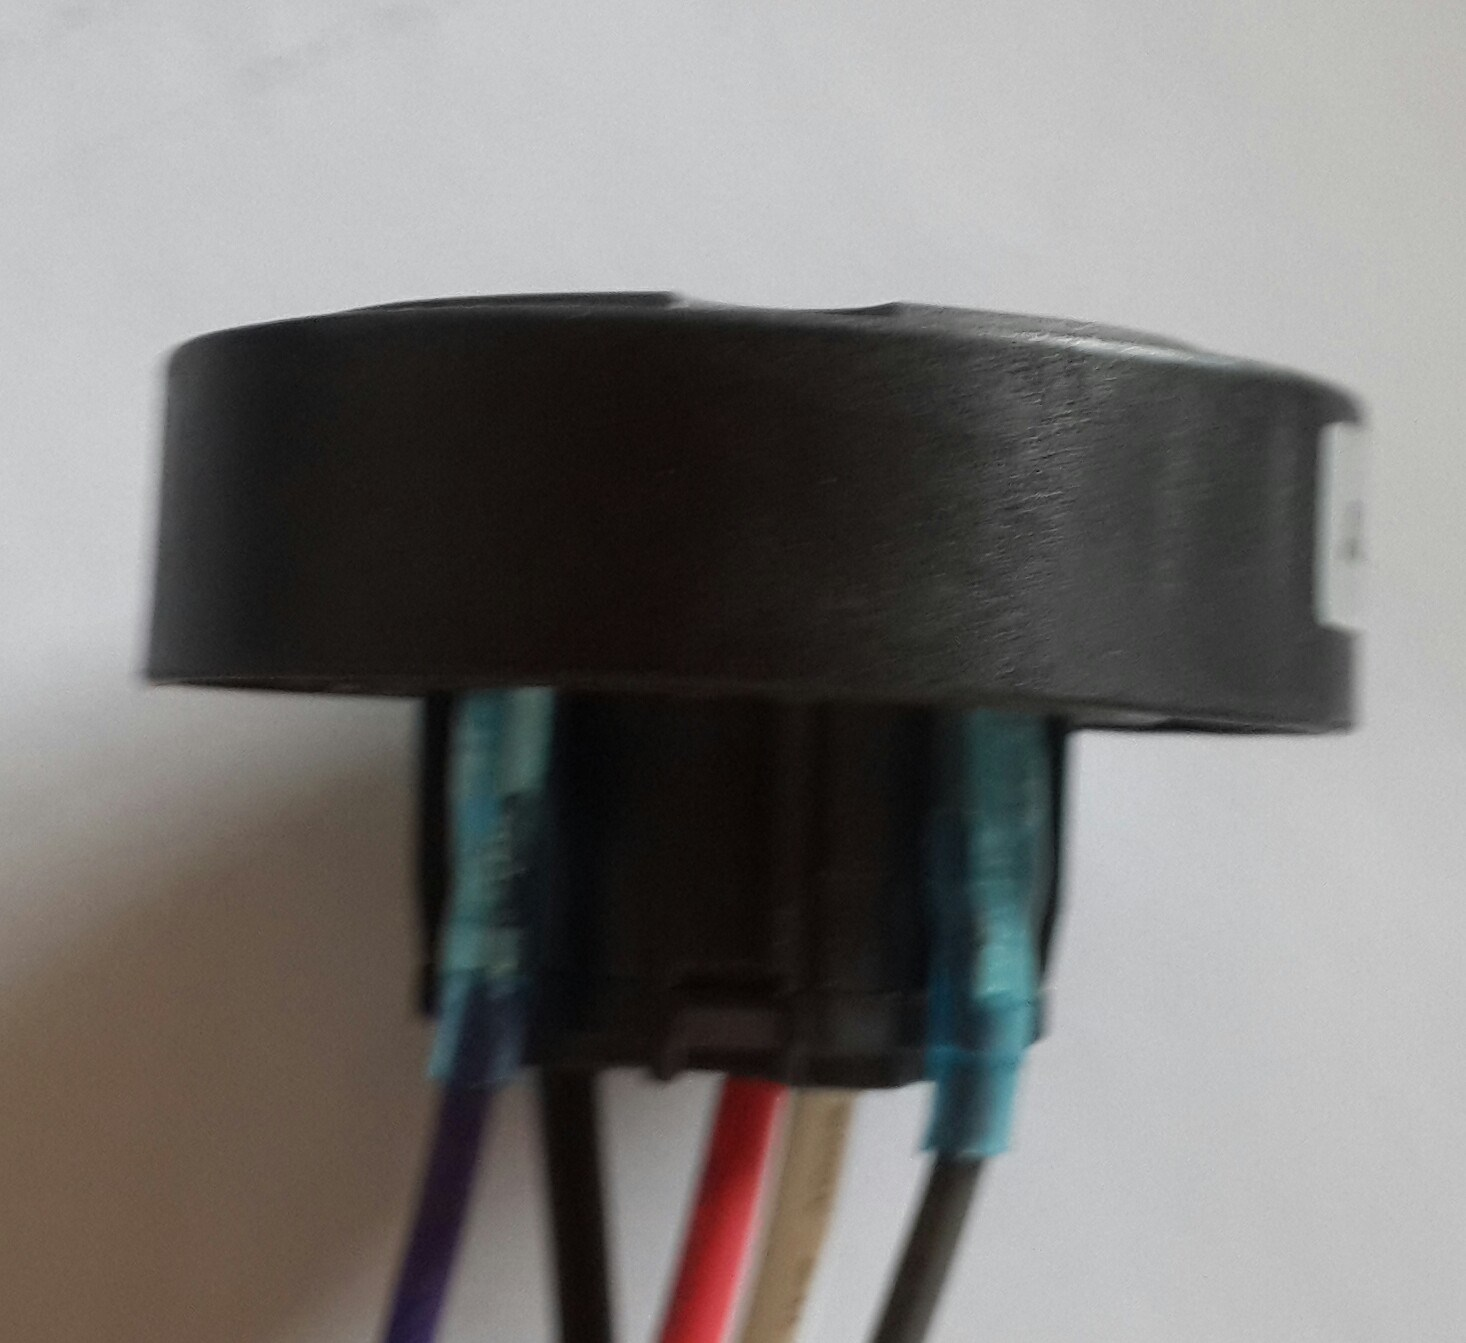 ANSI C136.41 7 POS Cable Part 2213627-4 Twist-Lock Receptacle Conncetor for Twist-Lock Photocontrol for LED Lighting